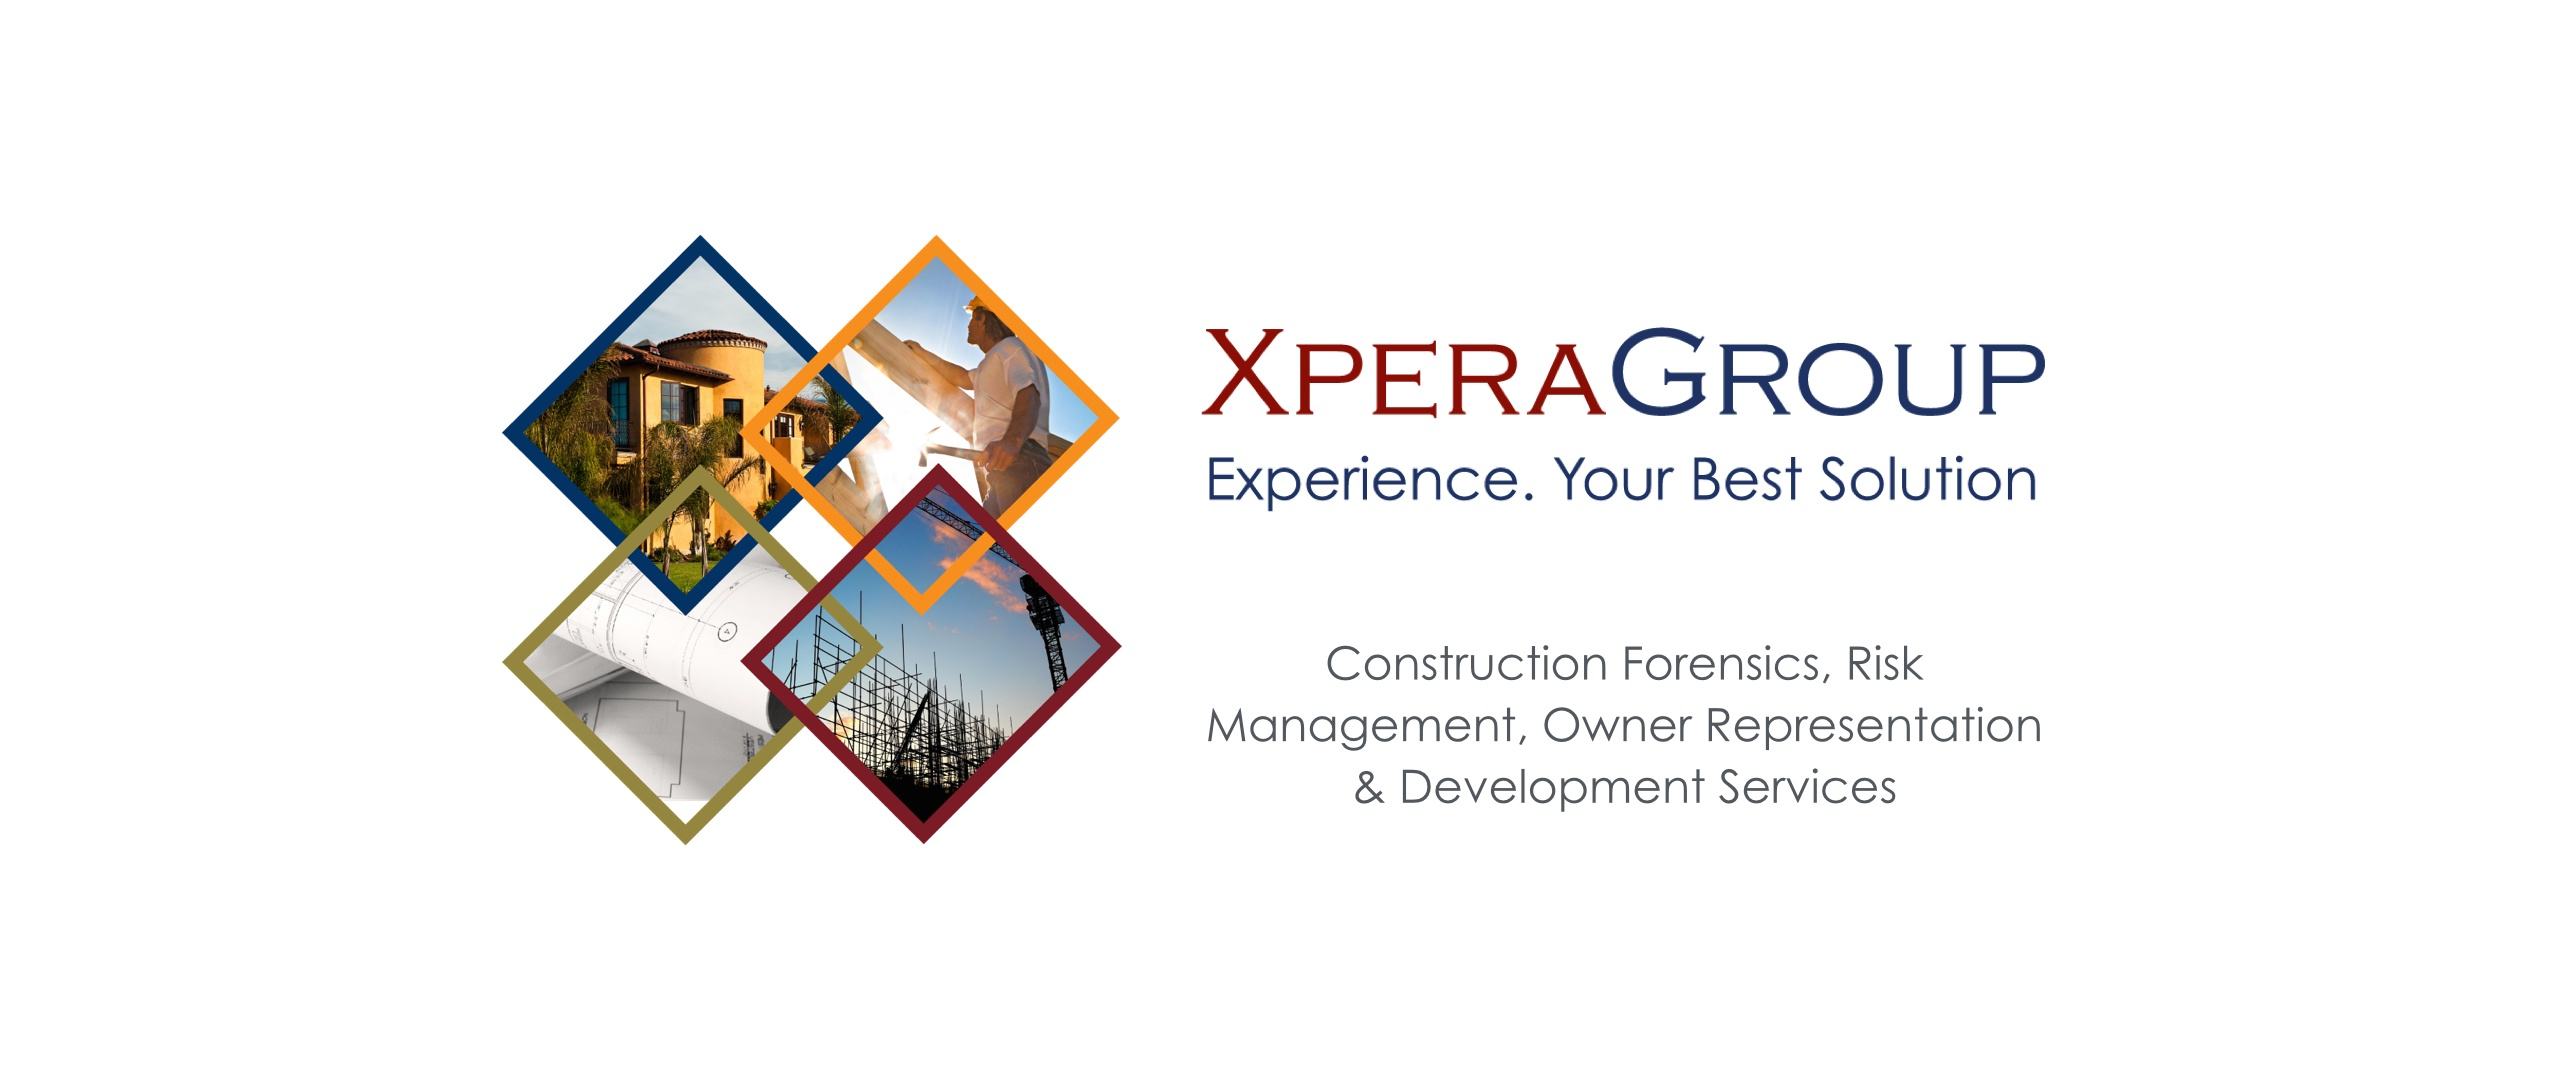 Construction Forensics, Risk Management, Owner Representation and Development Services